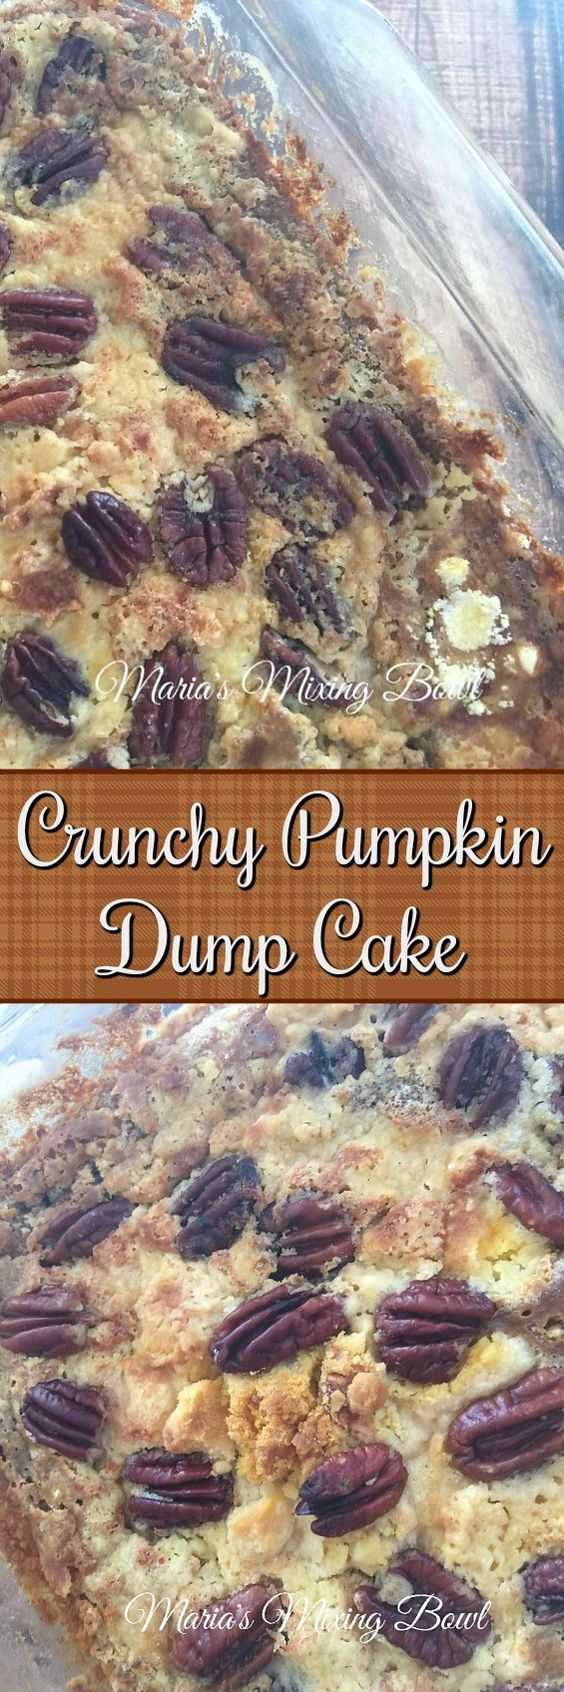 CRUNCHY PUMPKIN DUMP CAKE - makes the perfect pumpkin fall dessert. Once you try it, you'll make it again and again!